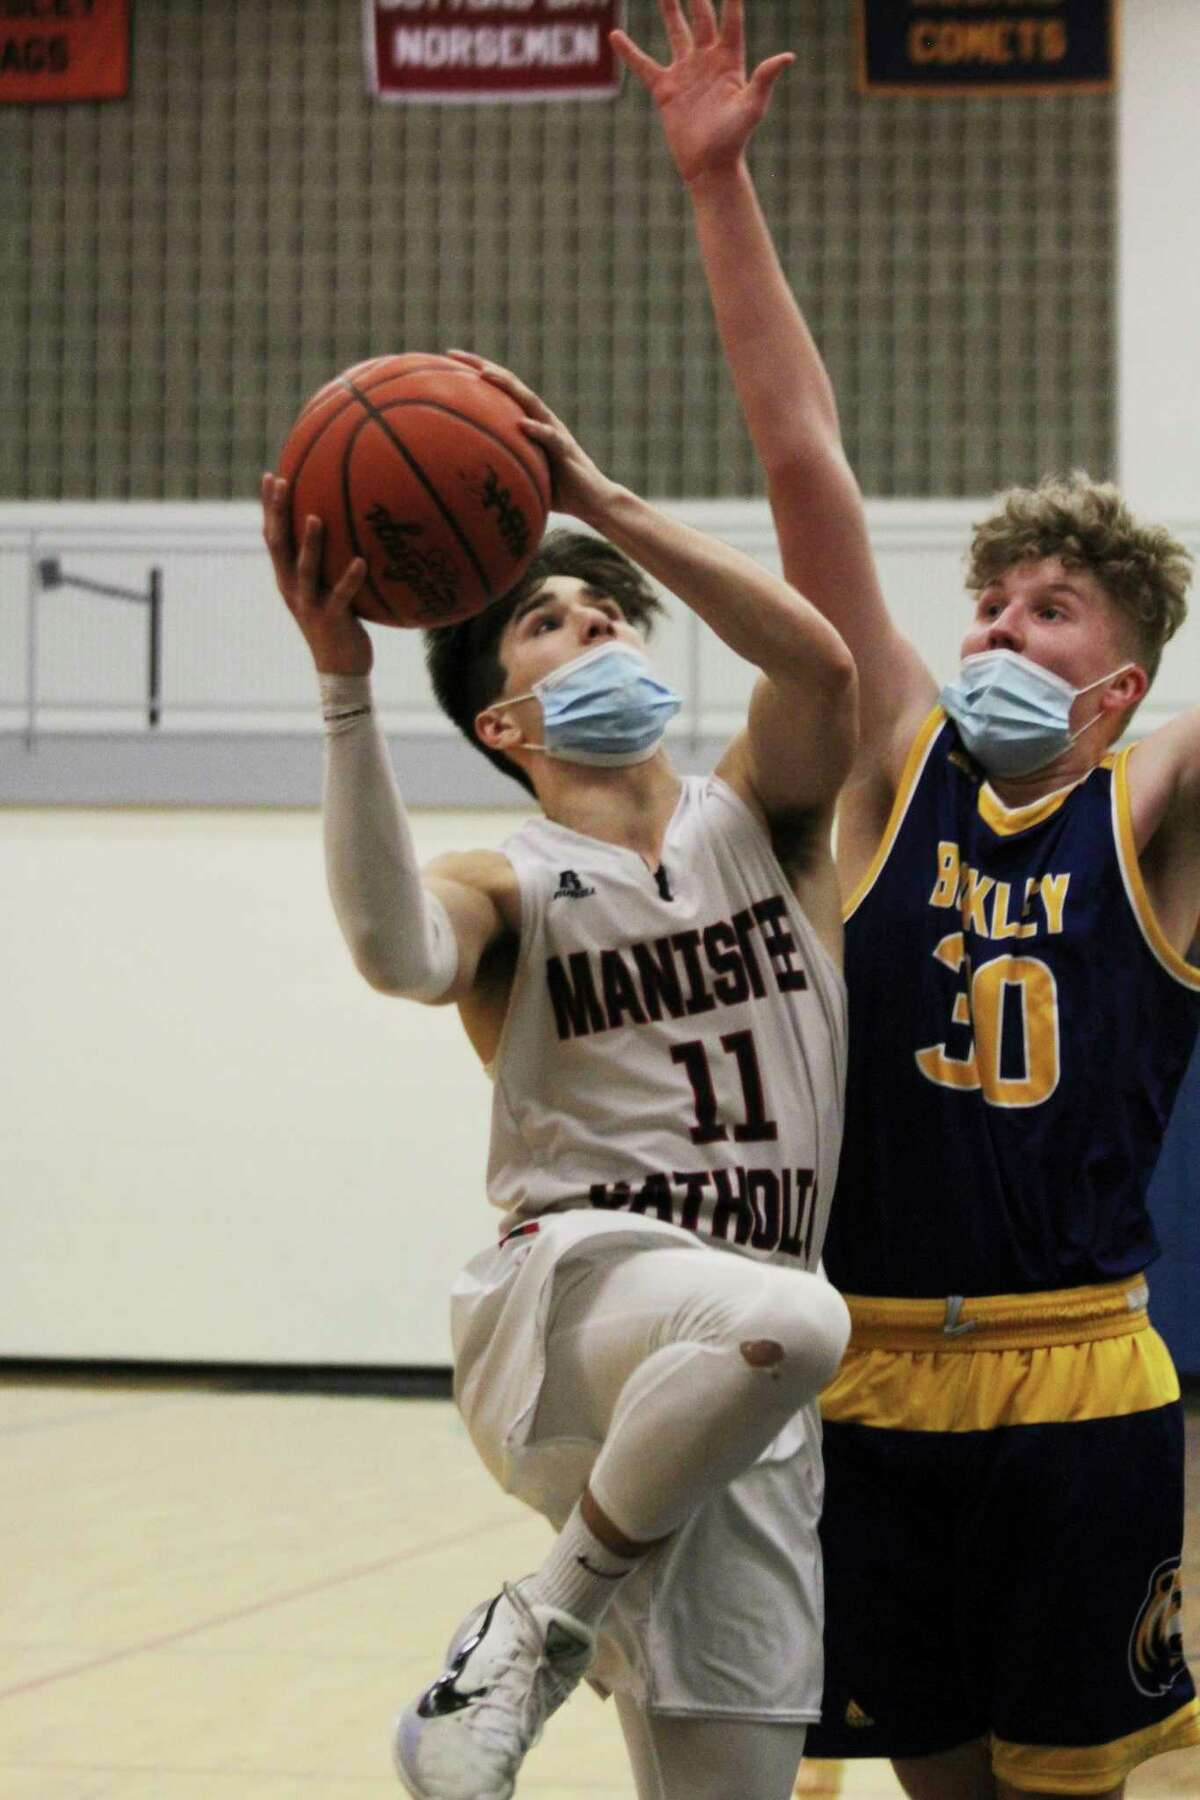 Manistee Catholic Central senior Mateo Barnett was named an All-State honorable mention in Division 4 boys basketball. (News Advocate file photo)